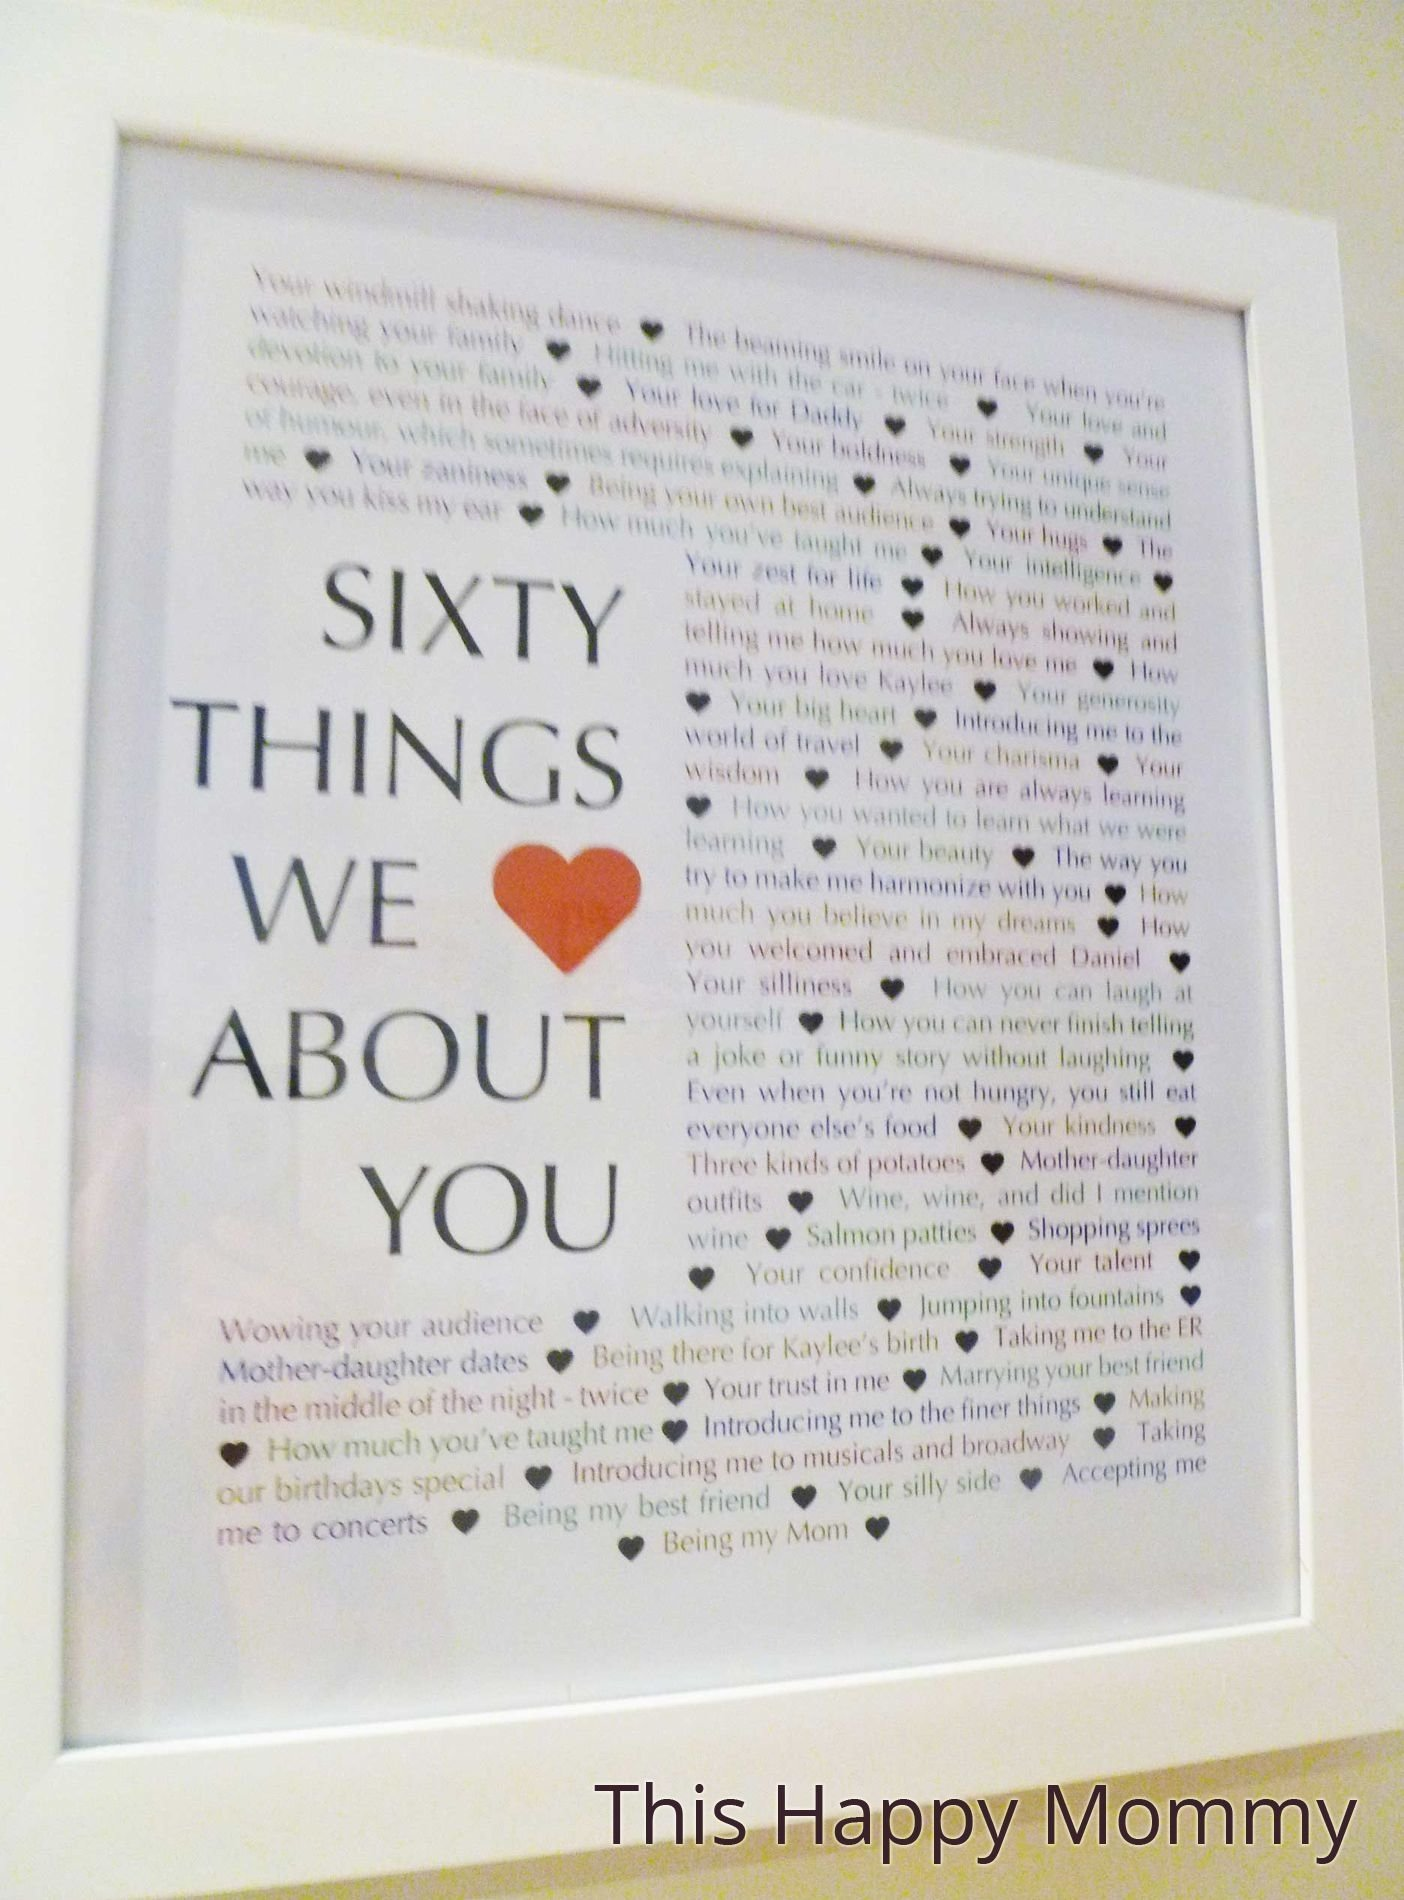 10 Lovely Great 60Th Birthday Gift Ideas 60 Things We Love About You Milestone Birthdays Homemade